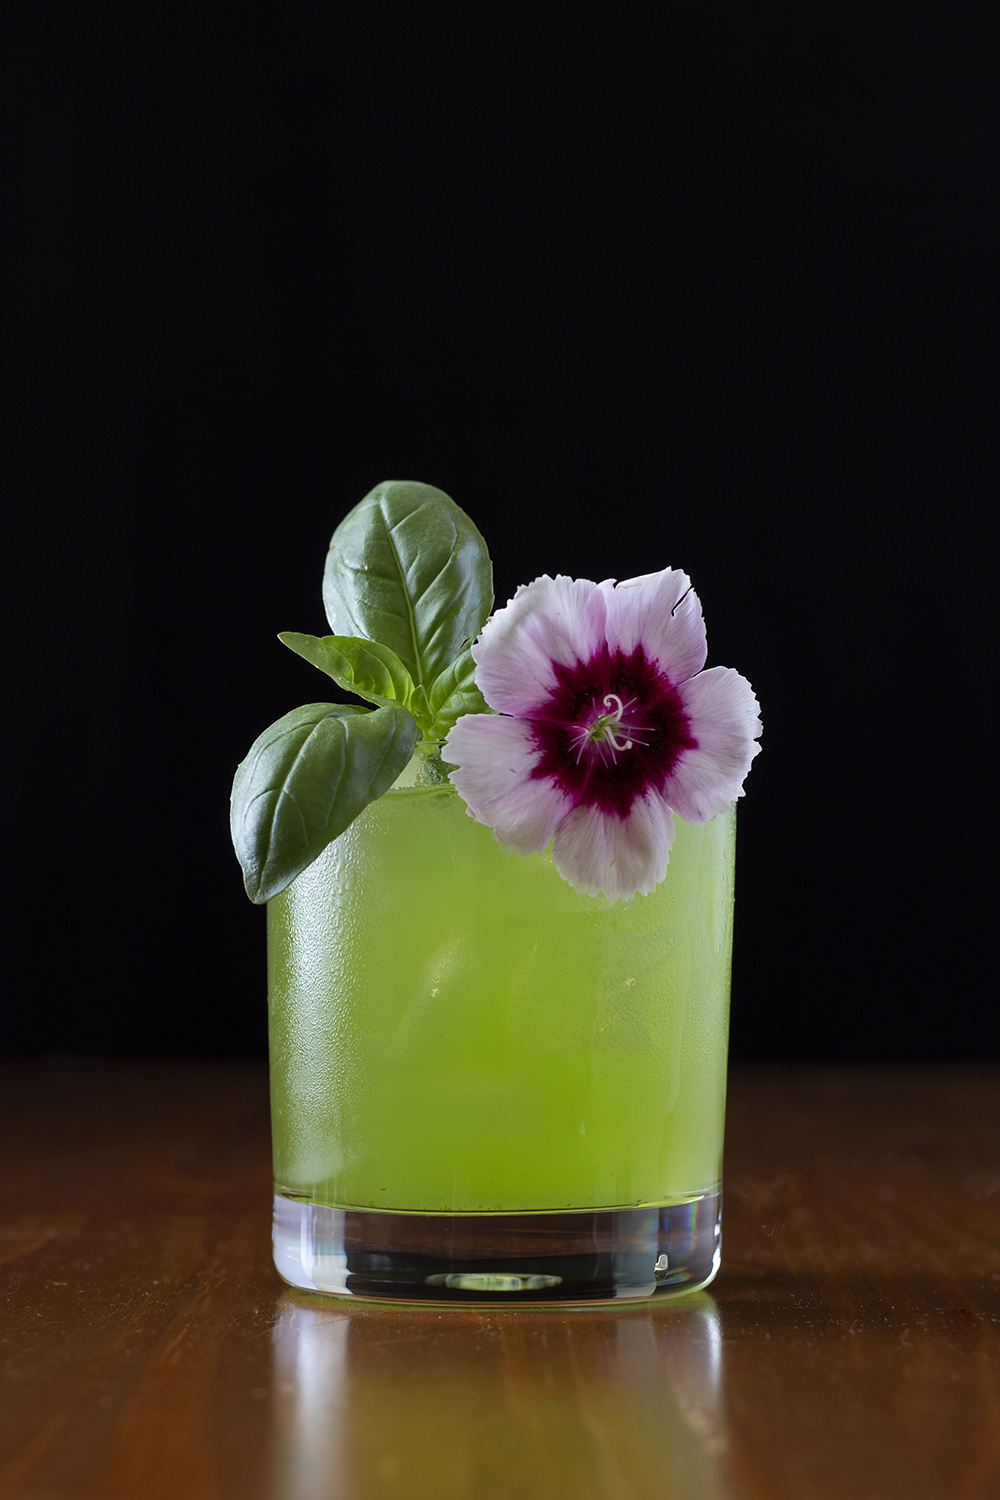 This Gin Basil Smash is eye-catching because of contrasting colors and shapes.